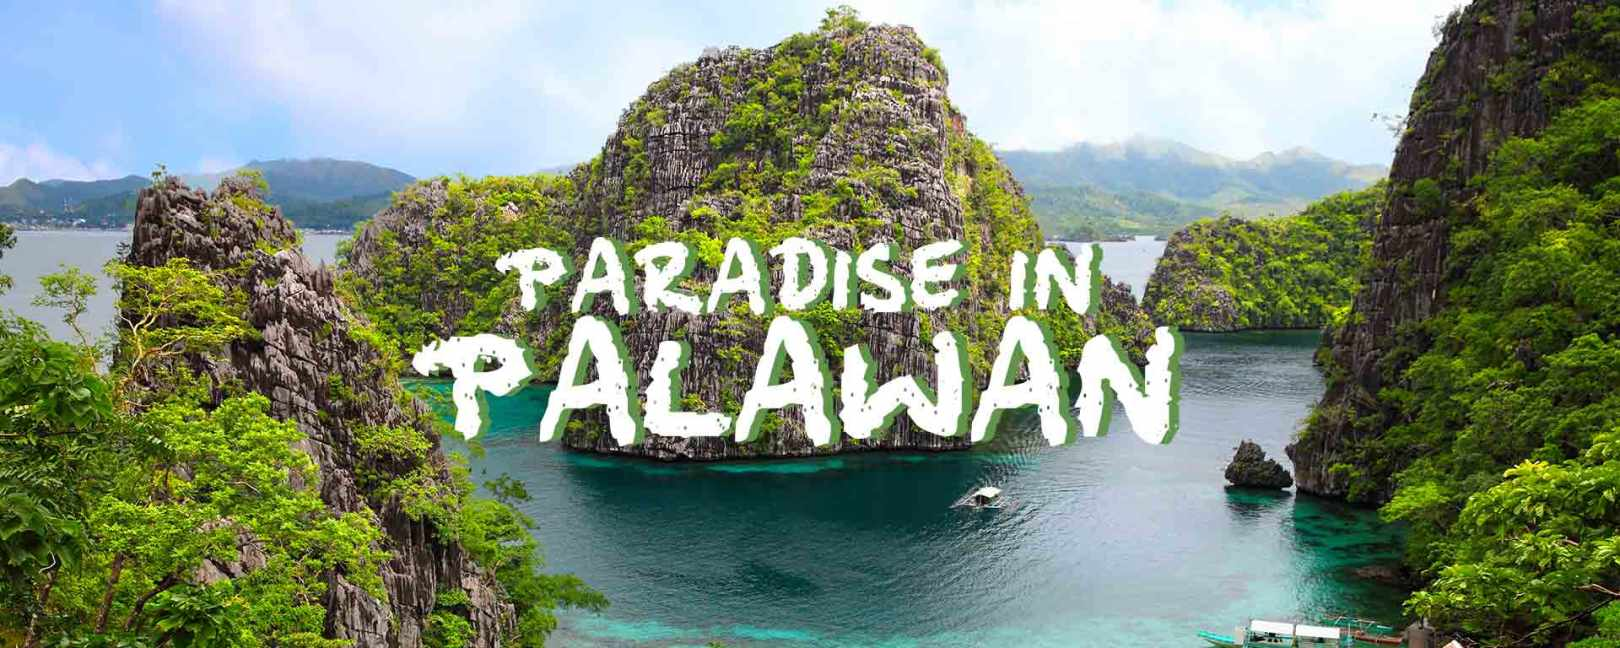 palawan-is-paradise-in-philippines